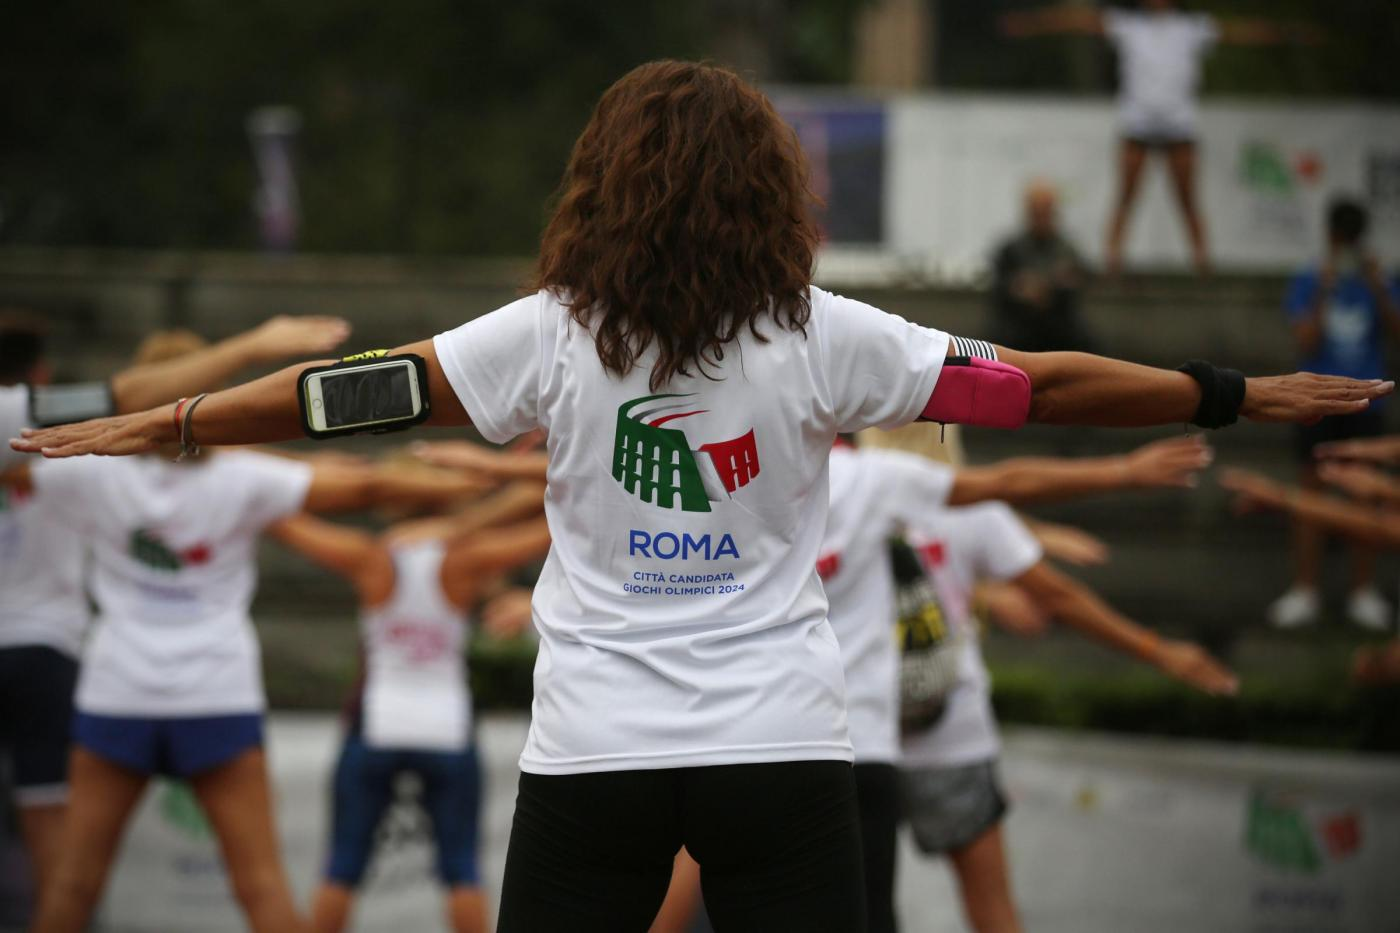 Il 10 settembre con Run with Roma 2024